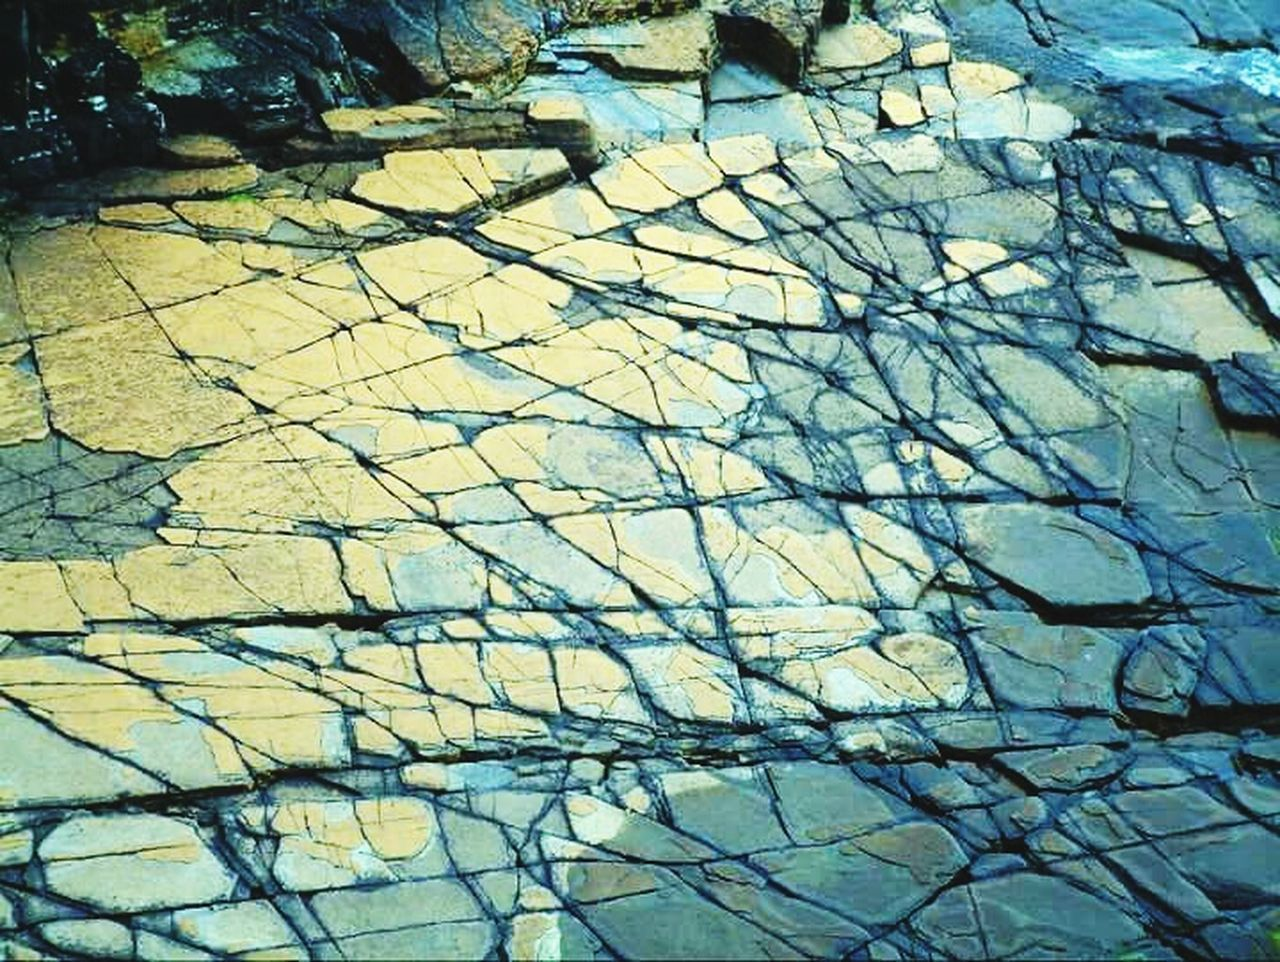 Lines Geology Rocks Orkneyislands Patterns In Nature Scotland Lifeasiseeit Patterns Abstract Pattern Pieces Johnnelson The KIOMI Collection